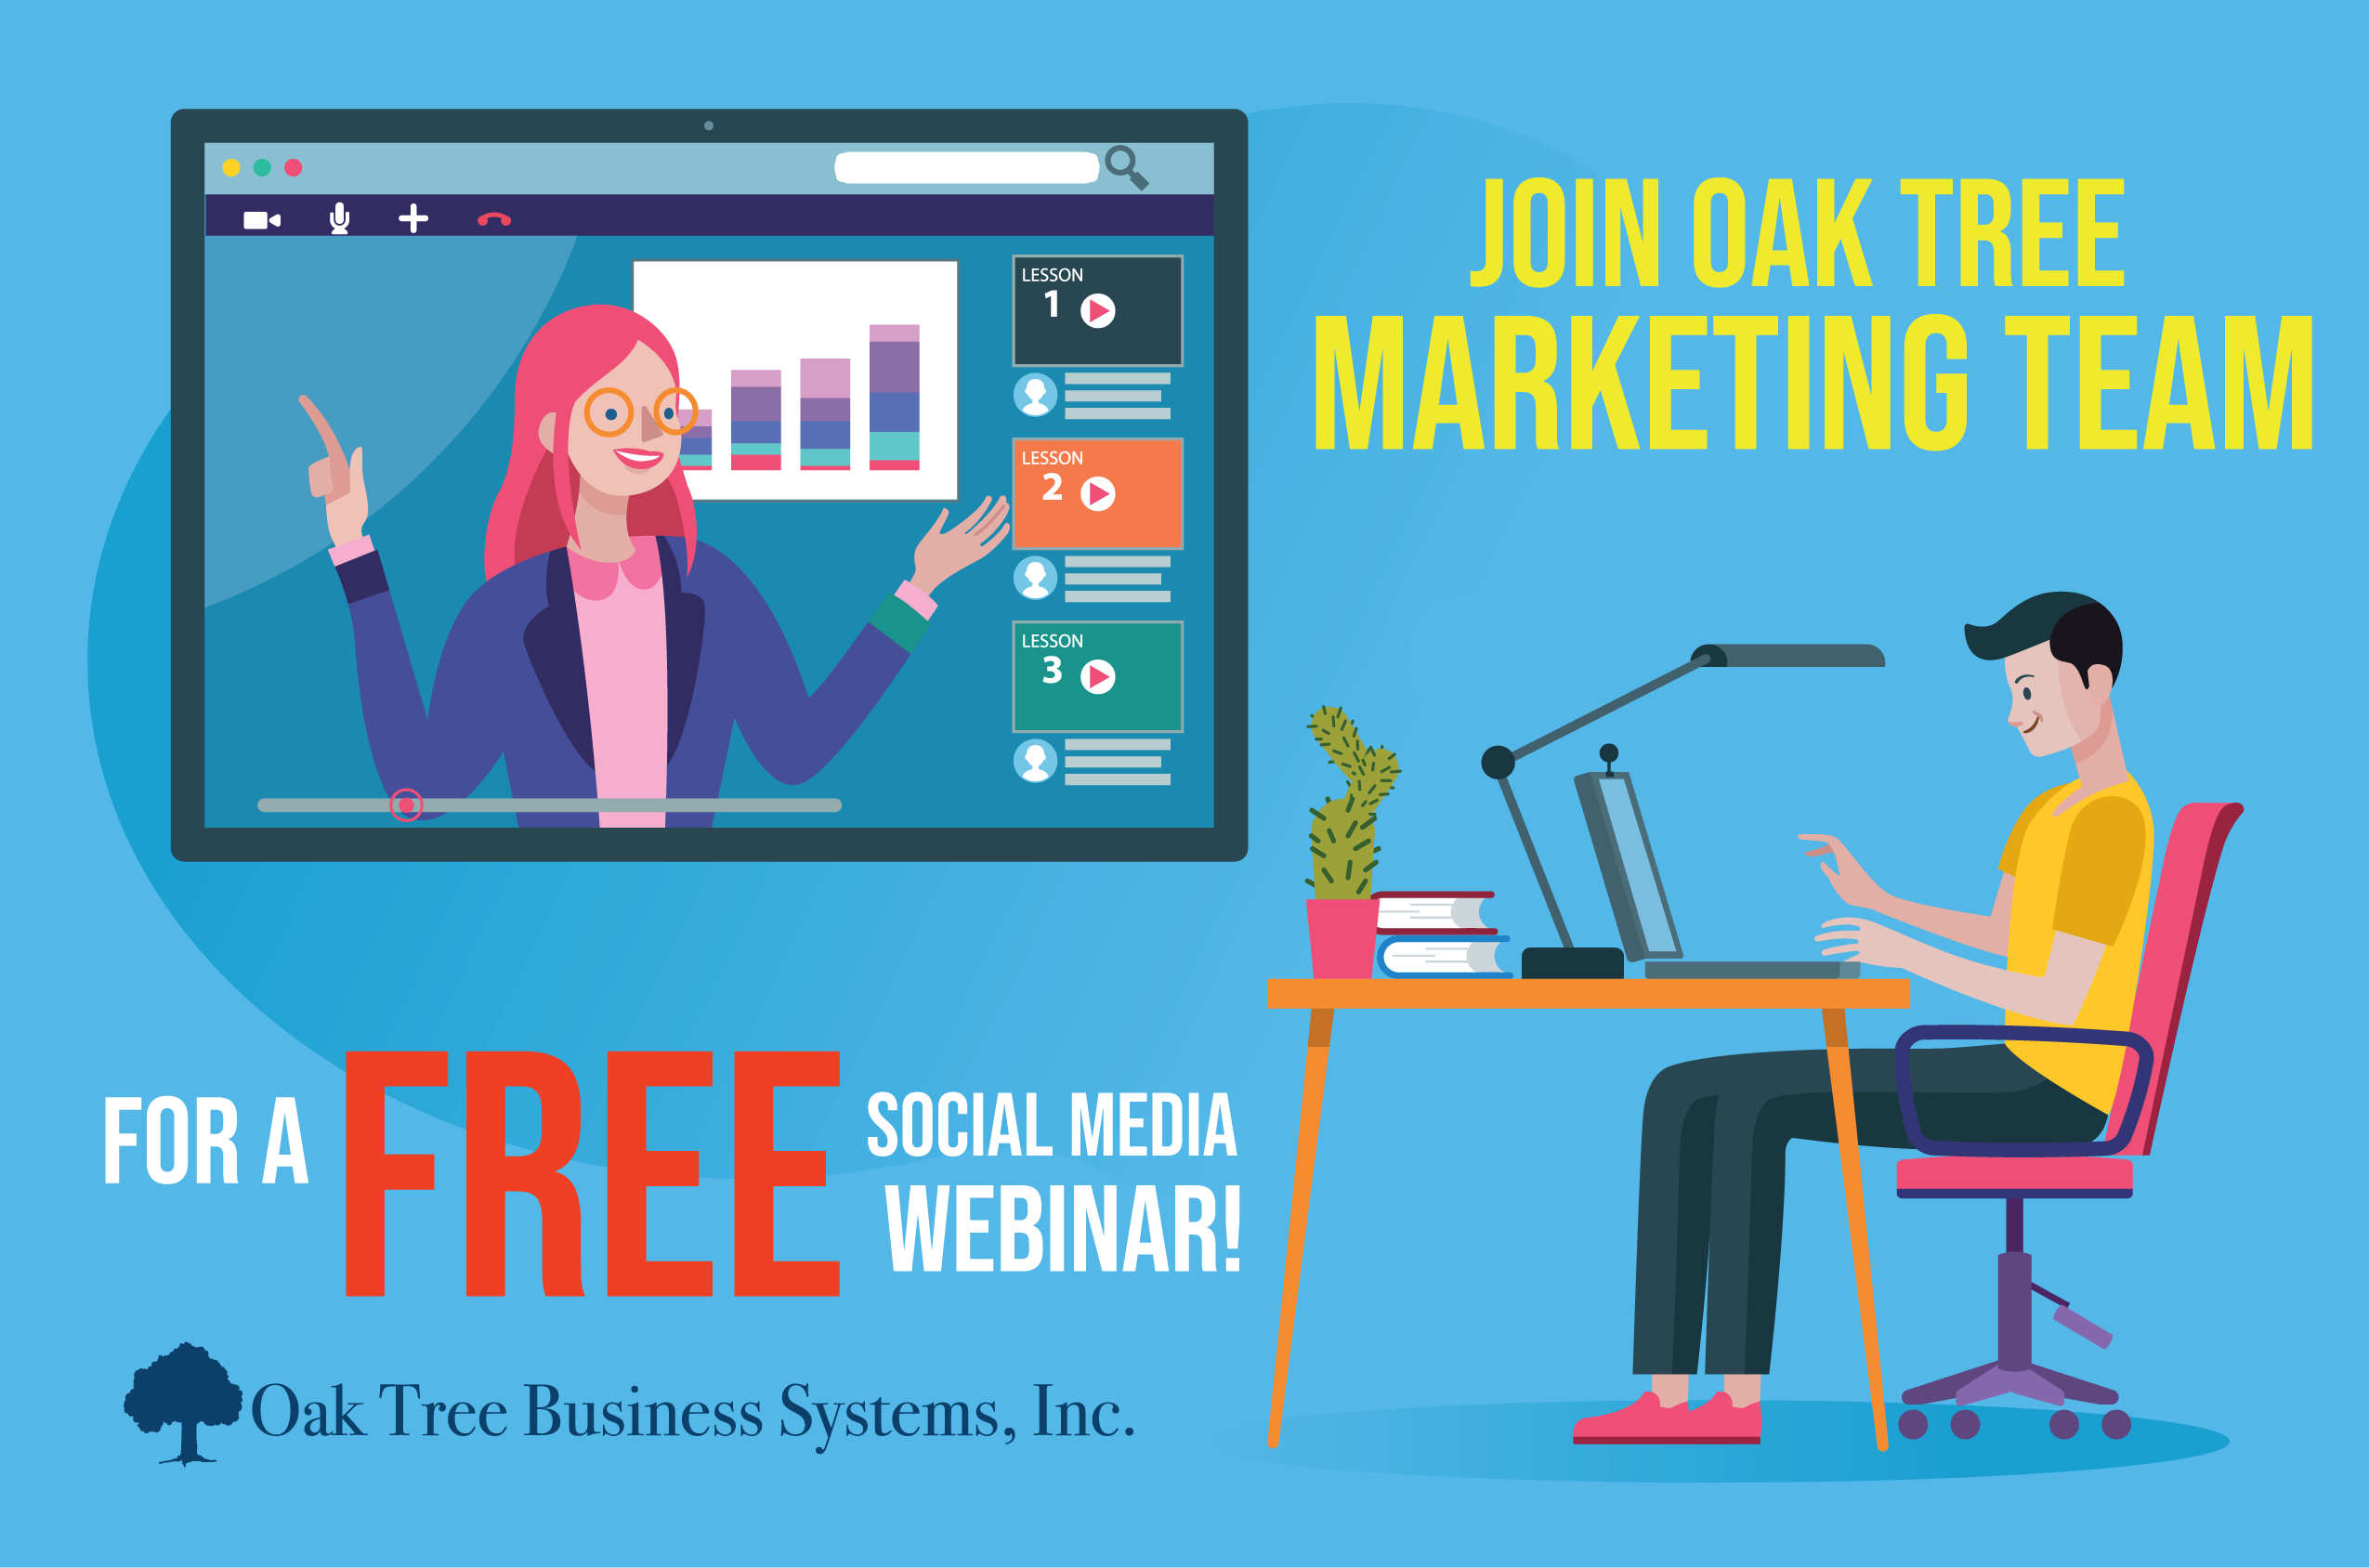 Contact Oak Tree Business Systems Business Systems Credit Union Marketing Marketing Services